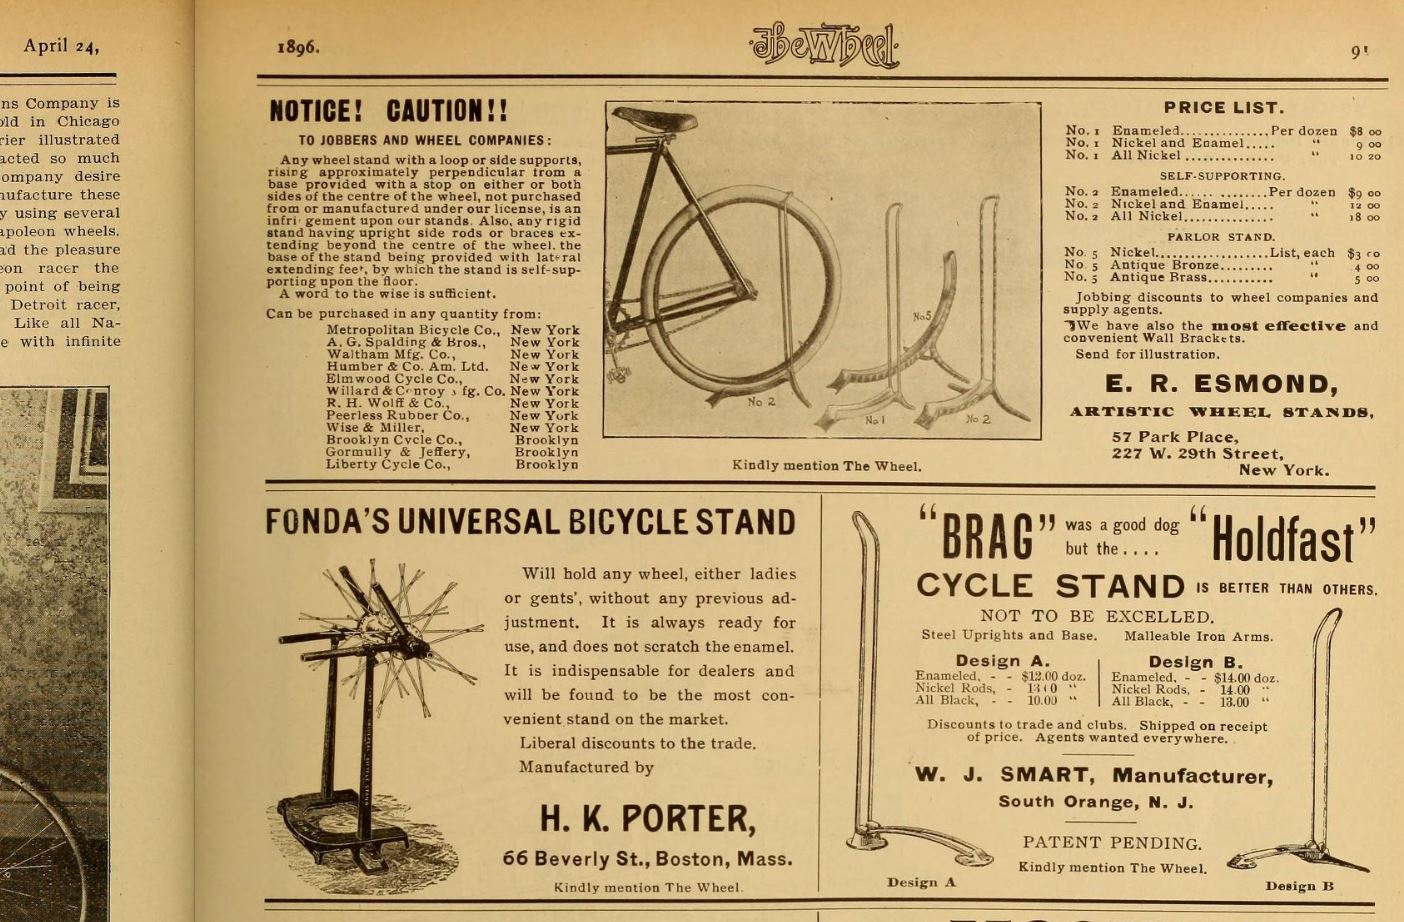 1896.04.24 - The Wheel - Stands.JPG